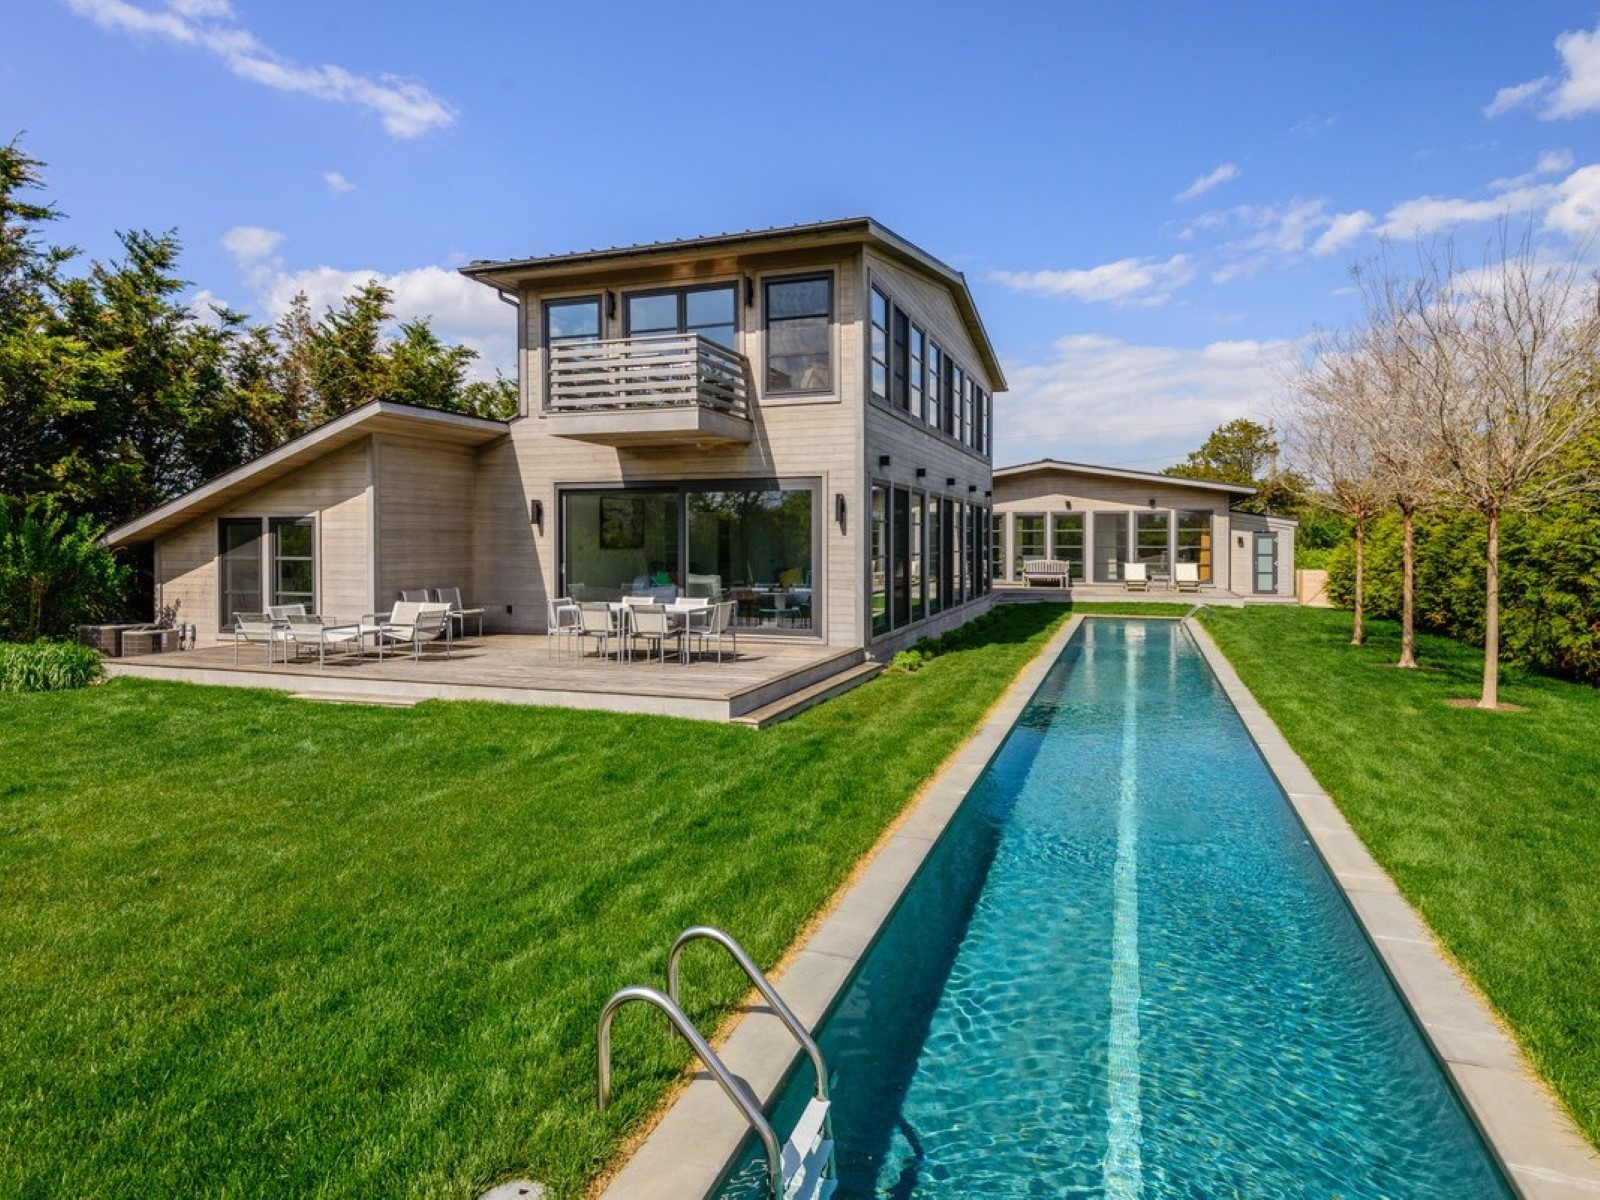 Single Family Home for Sale at Modern Compound, Immediate Ocean Access Sagaponack South, Sagaponack, New York 11962 United States